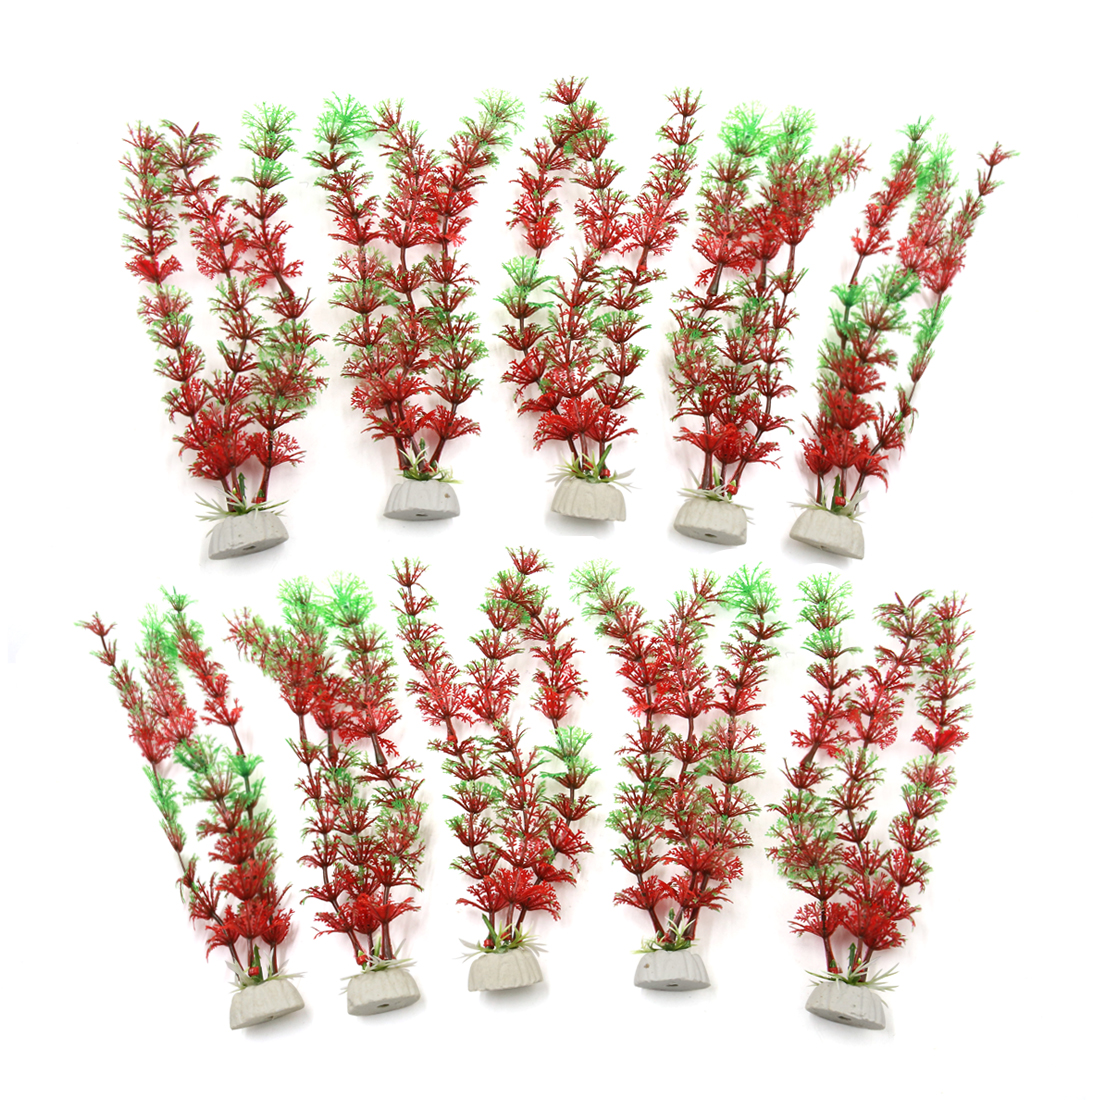 10pcs Aquarium Leaves Plants Fish Tank Water Plant Decor Landscape Red Green